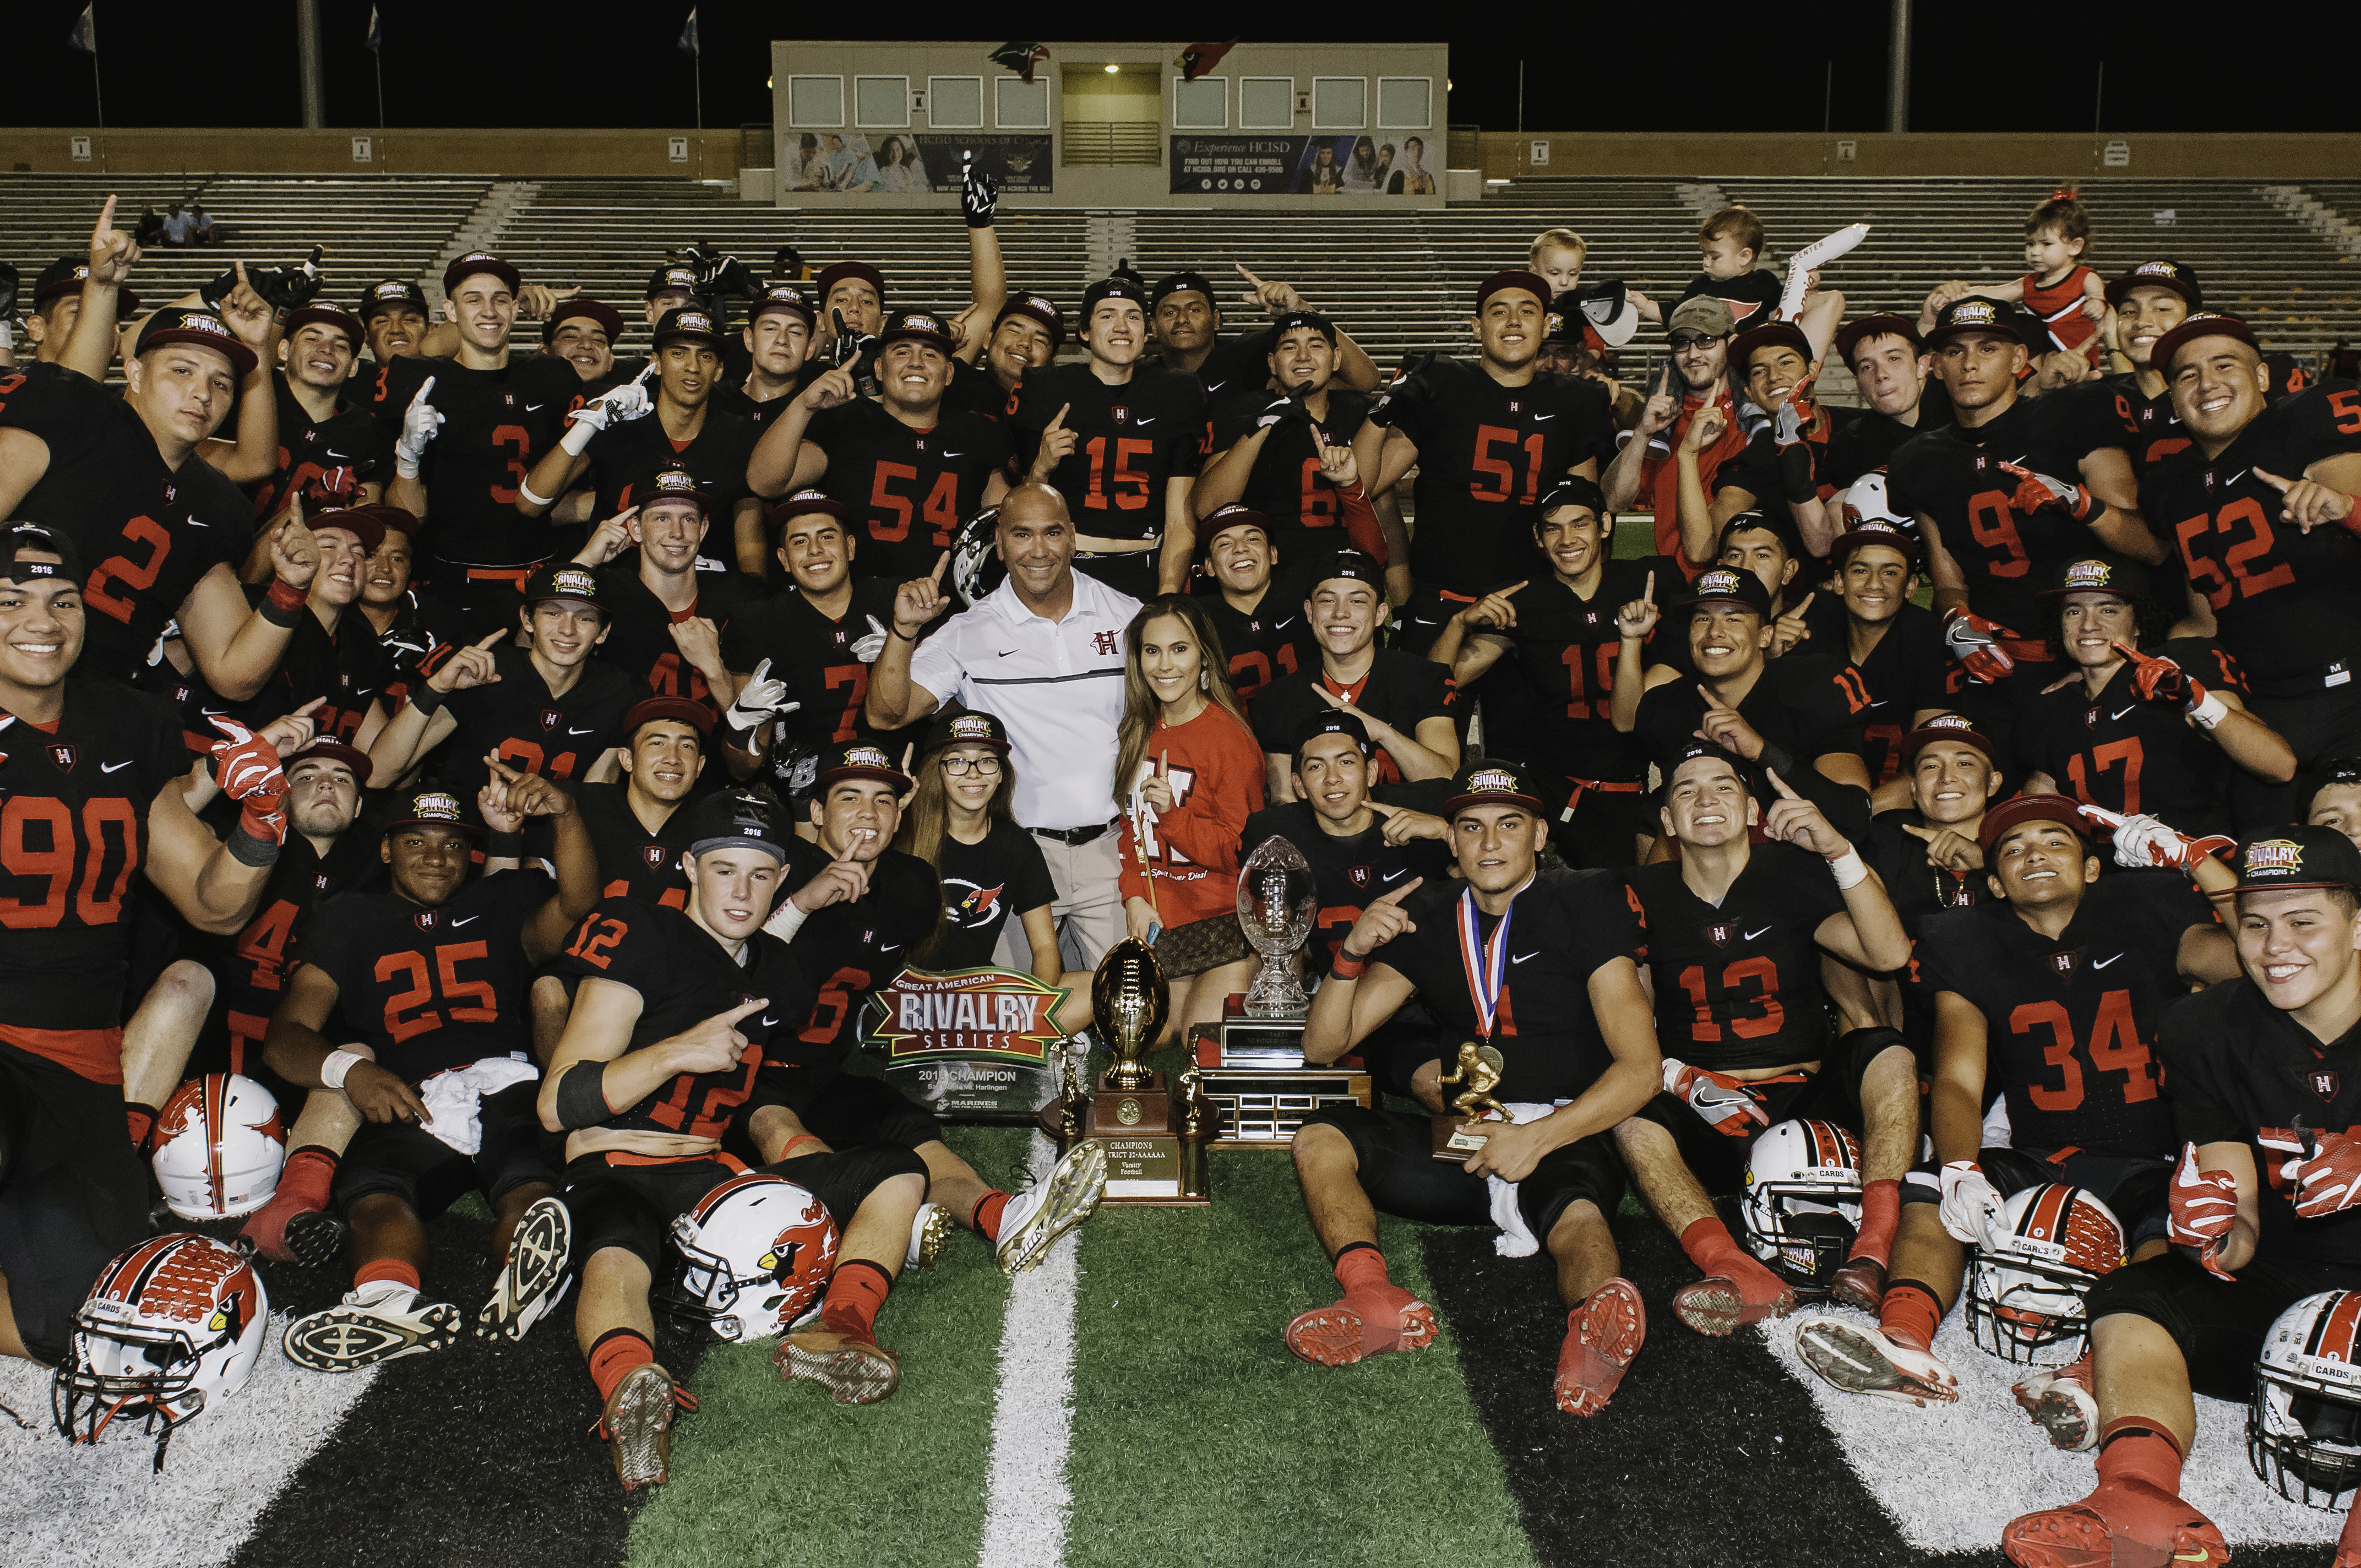 Harlingen Cardinals named District Champions after 87th Battle of the Arroyo win